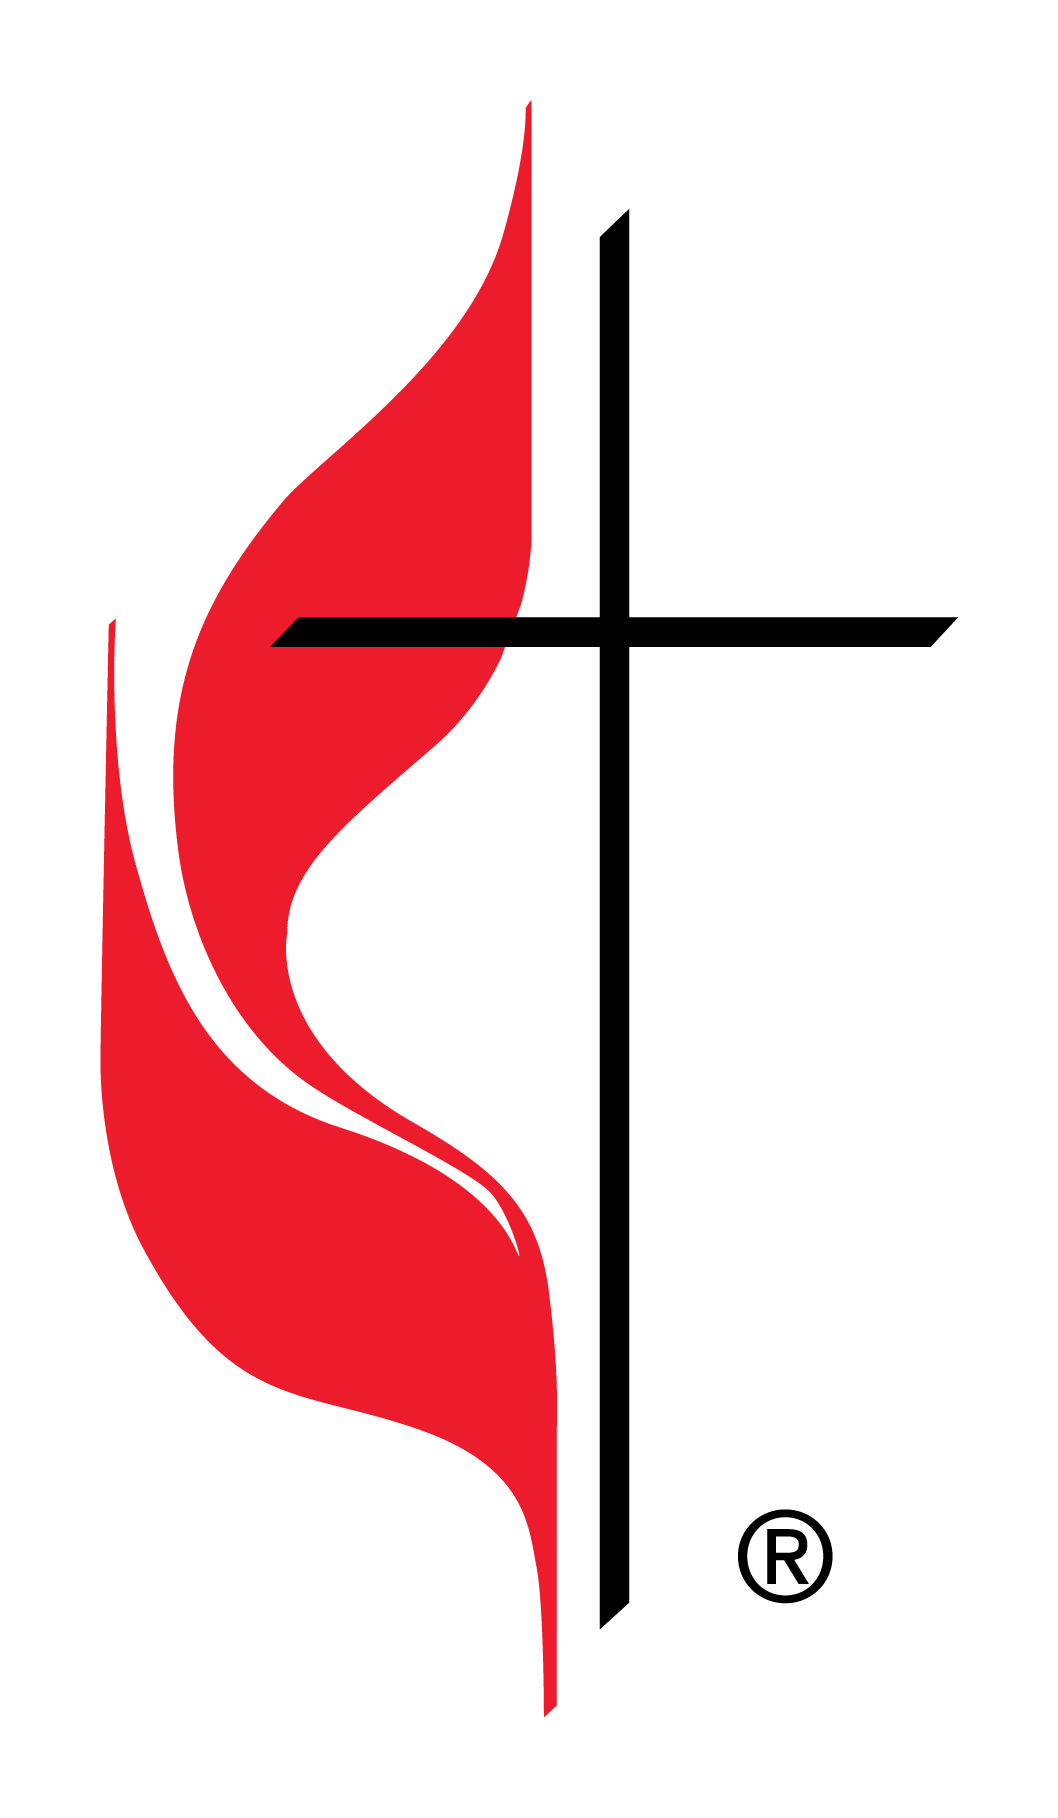 Cross flame the united. Flames clipart black and white